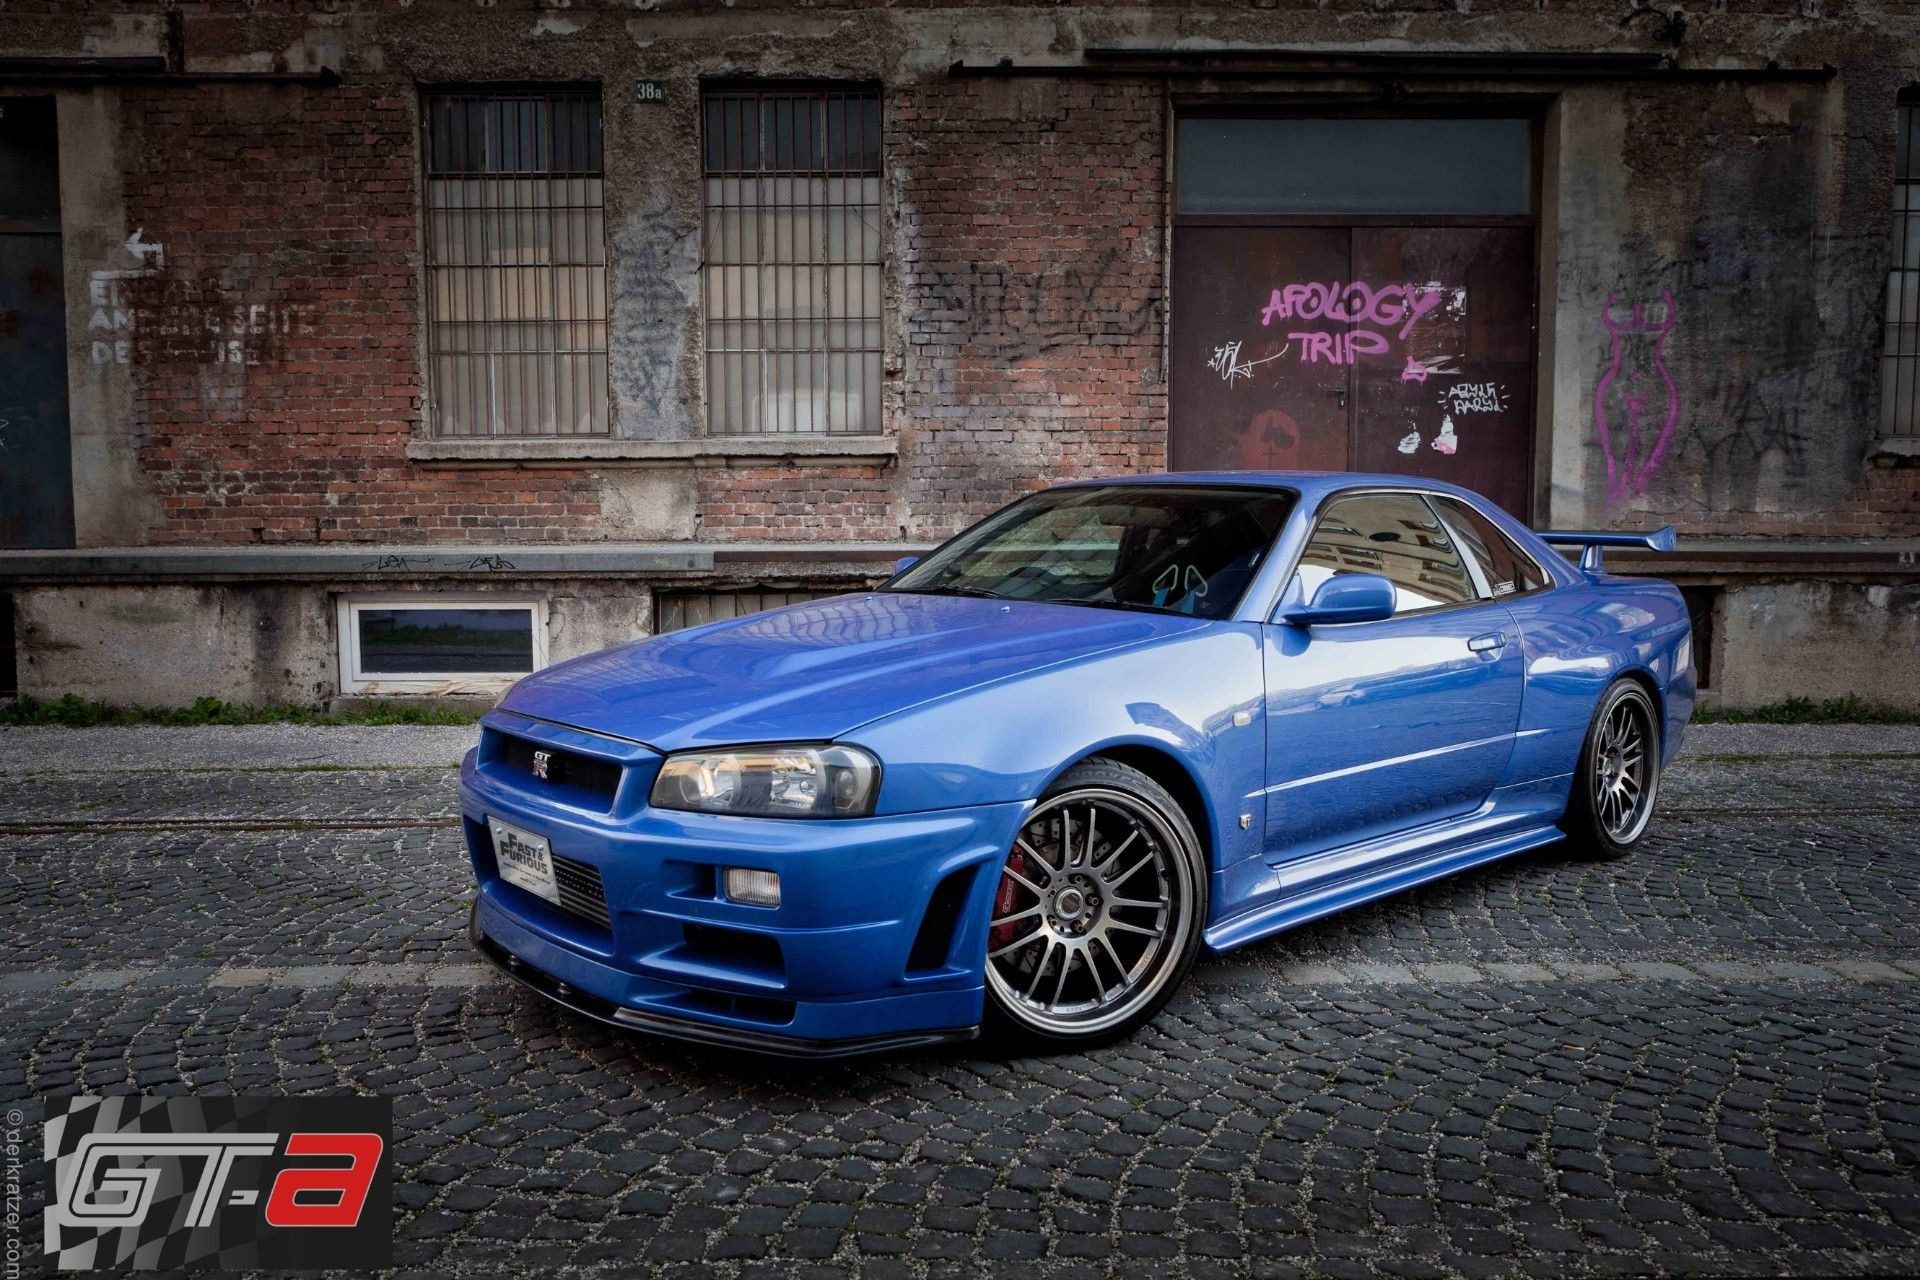 Paul Walker's Fast & Furious 4 R34 Nissan GT-R For Sale, Priced At $1.35 Million  I like - http://extreme-modified.com/